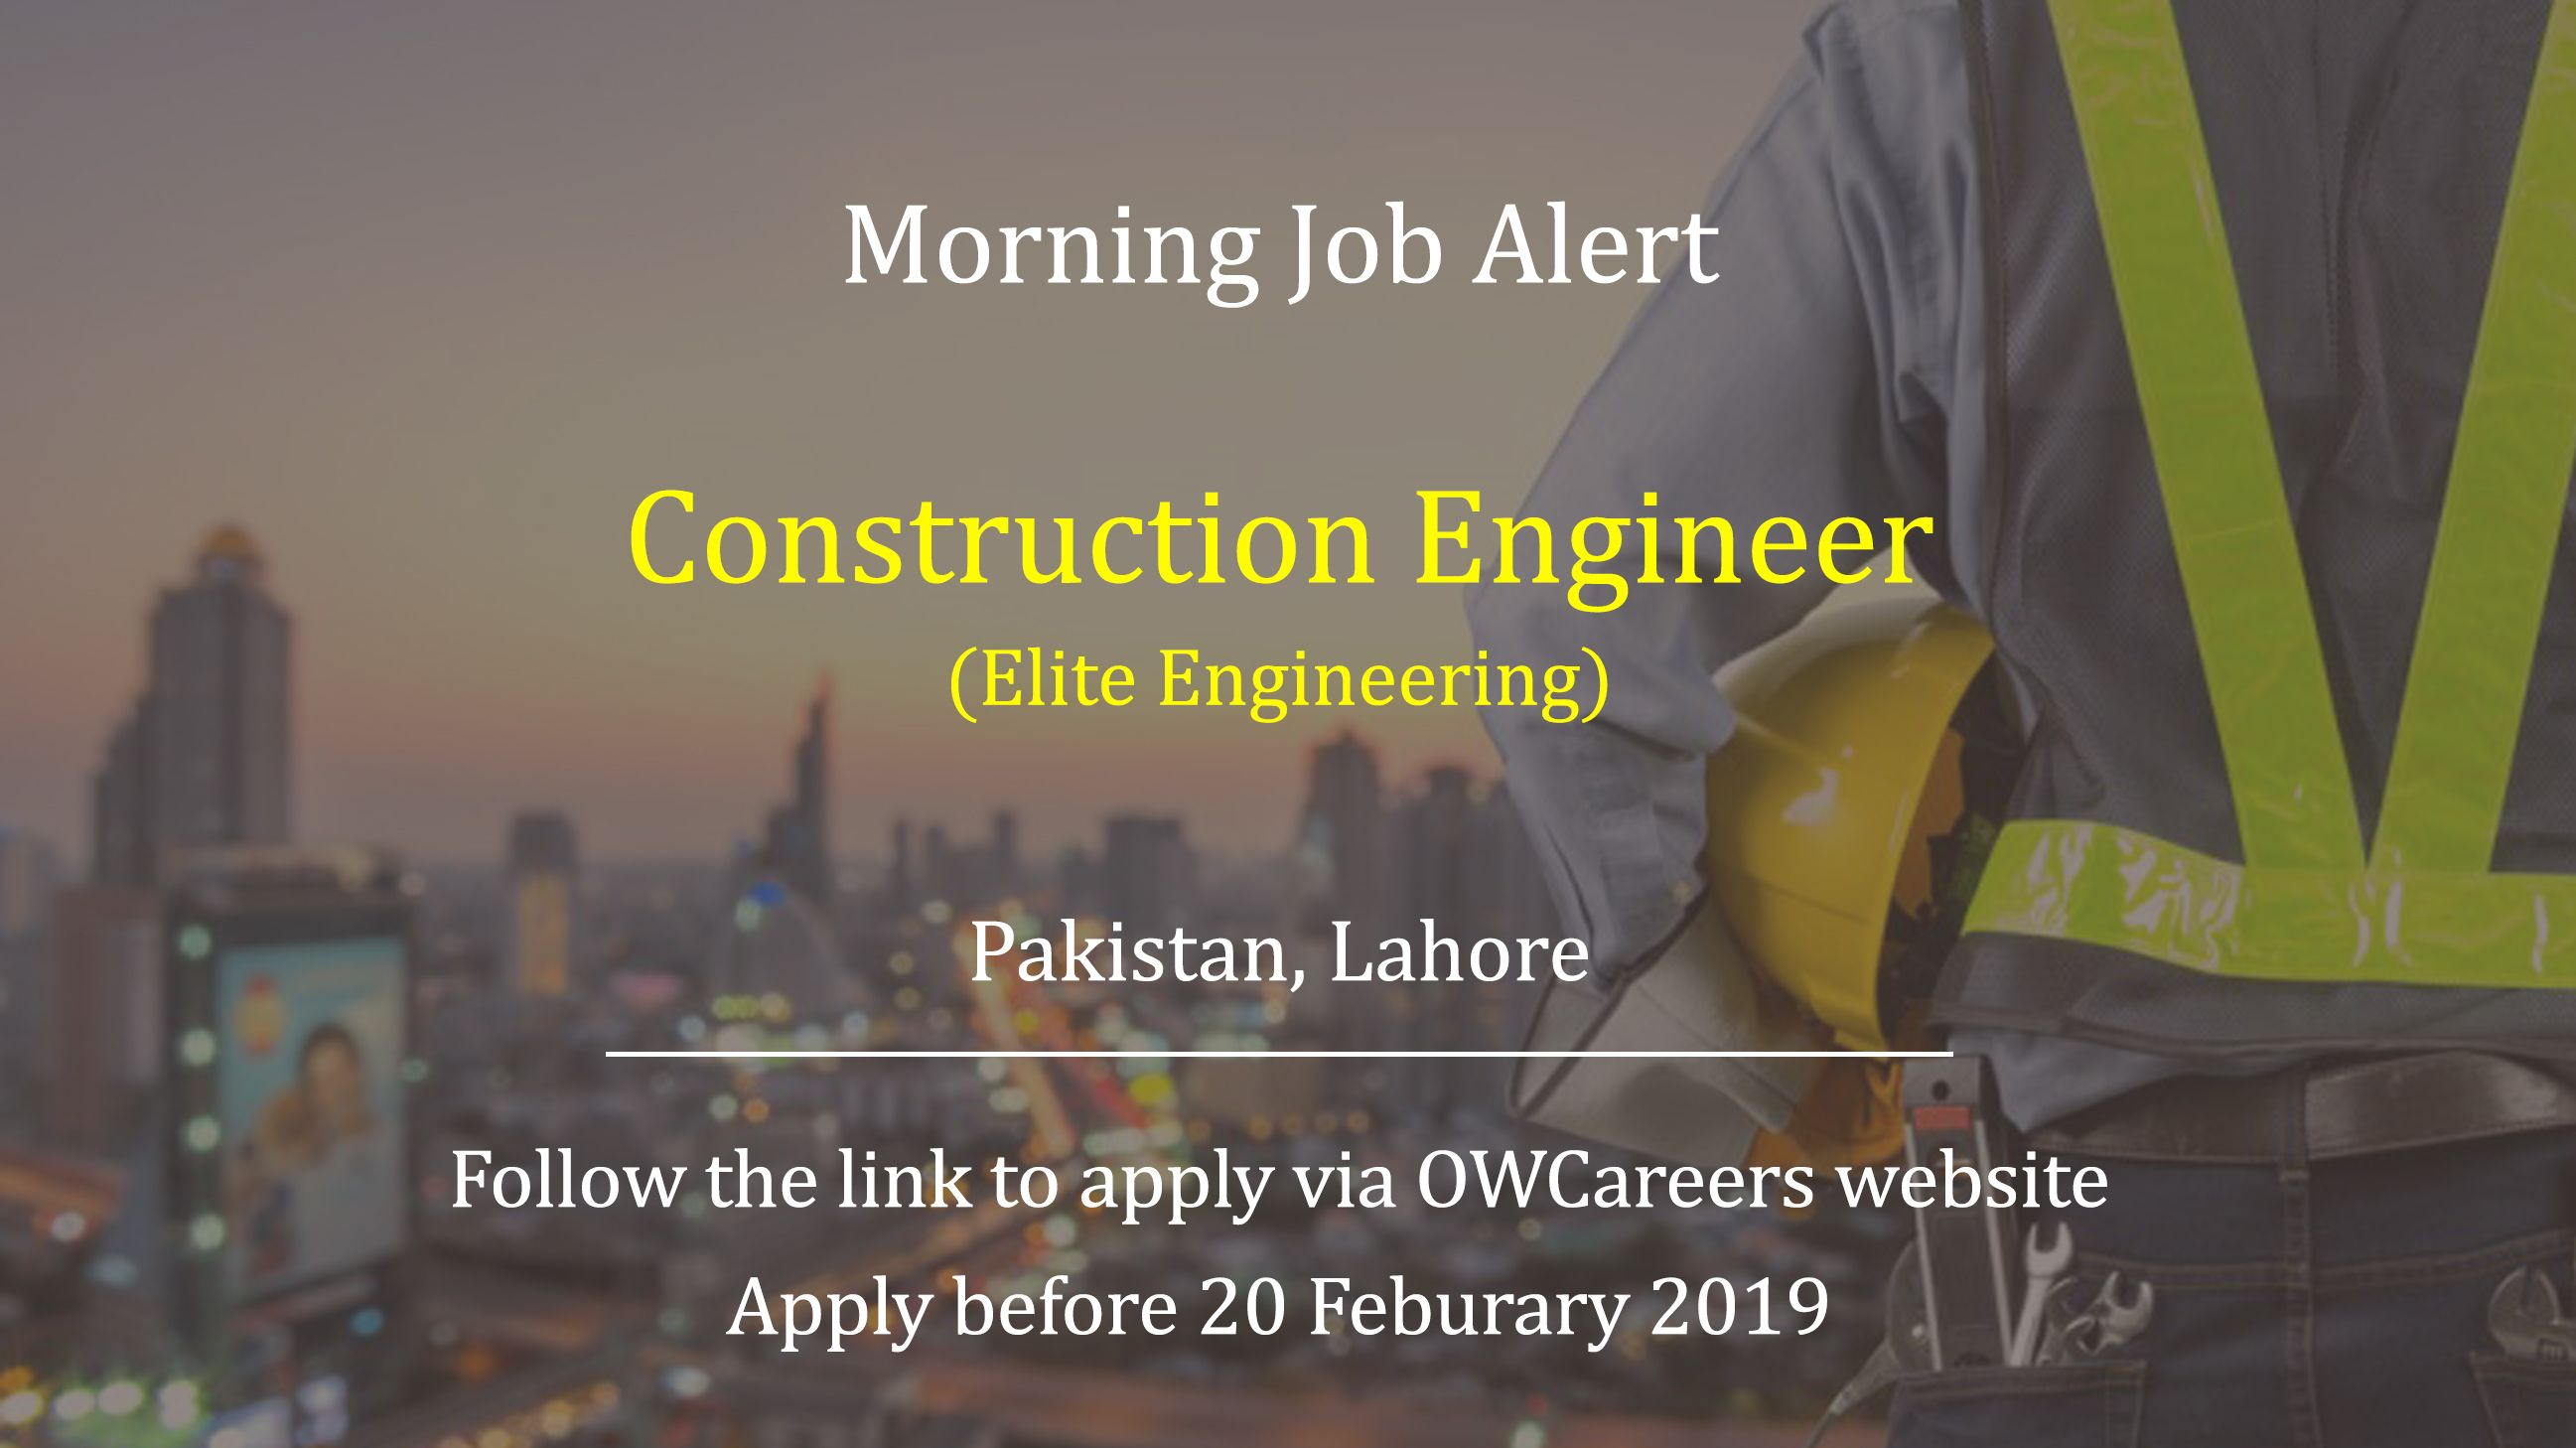 Construction Engineer Job is available with Elite